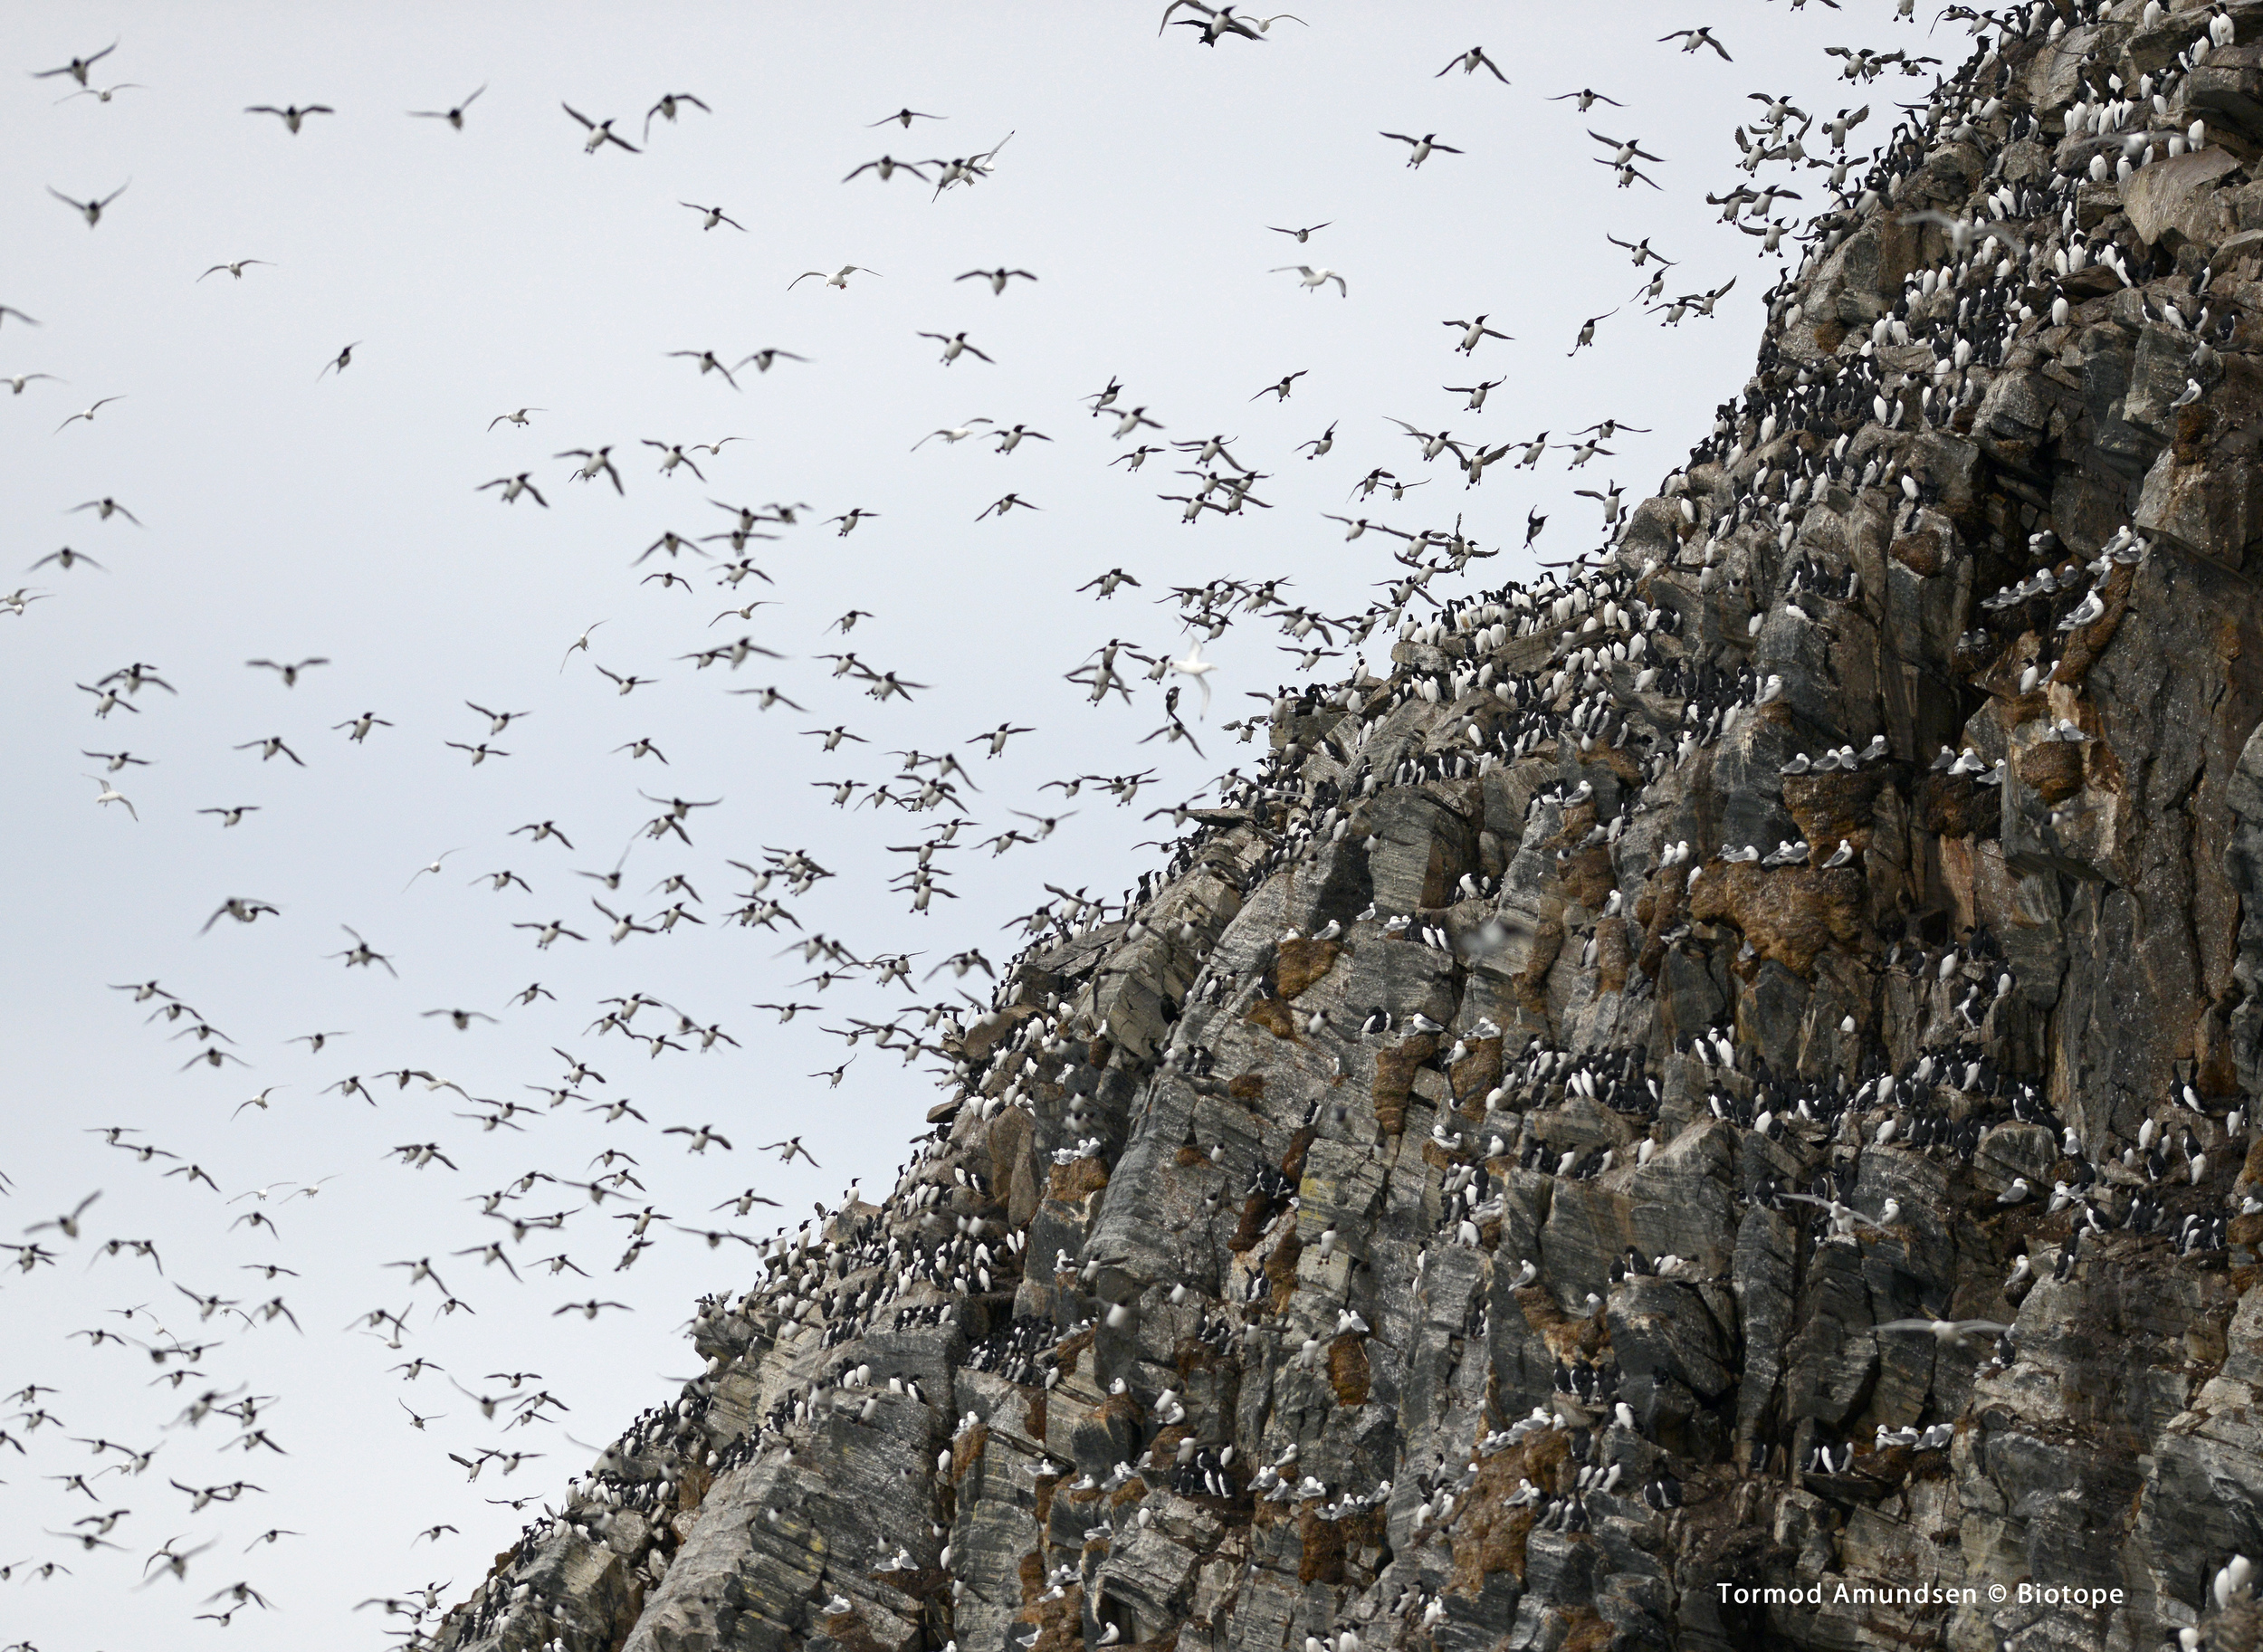 Hornøya incoming guillemots bird cliff march 2014 med res sign Amundsen Biotope.jpg